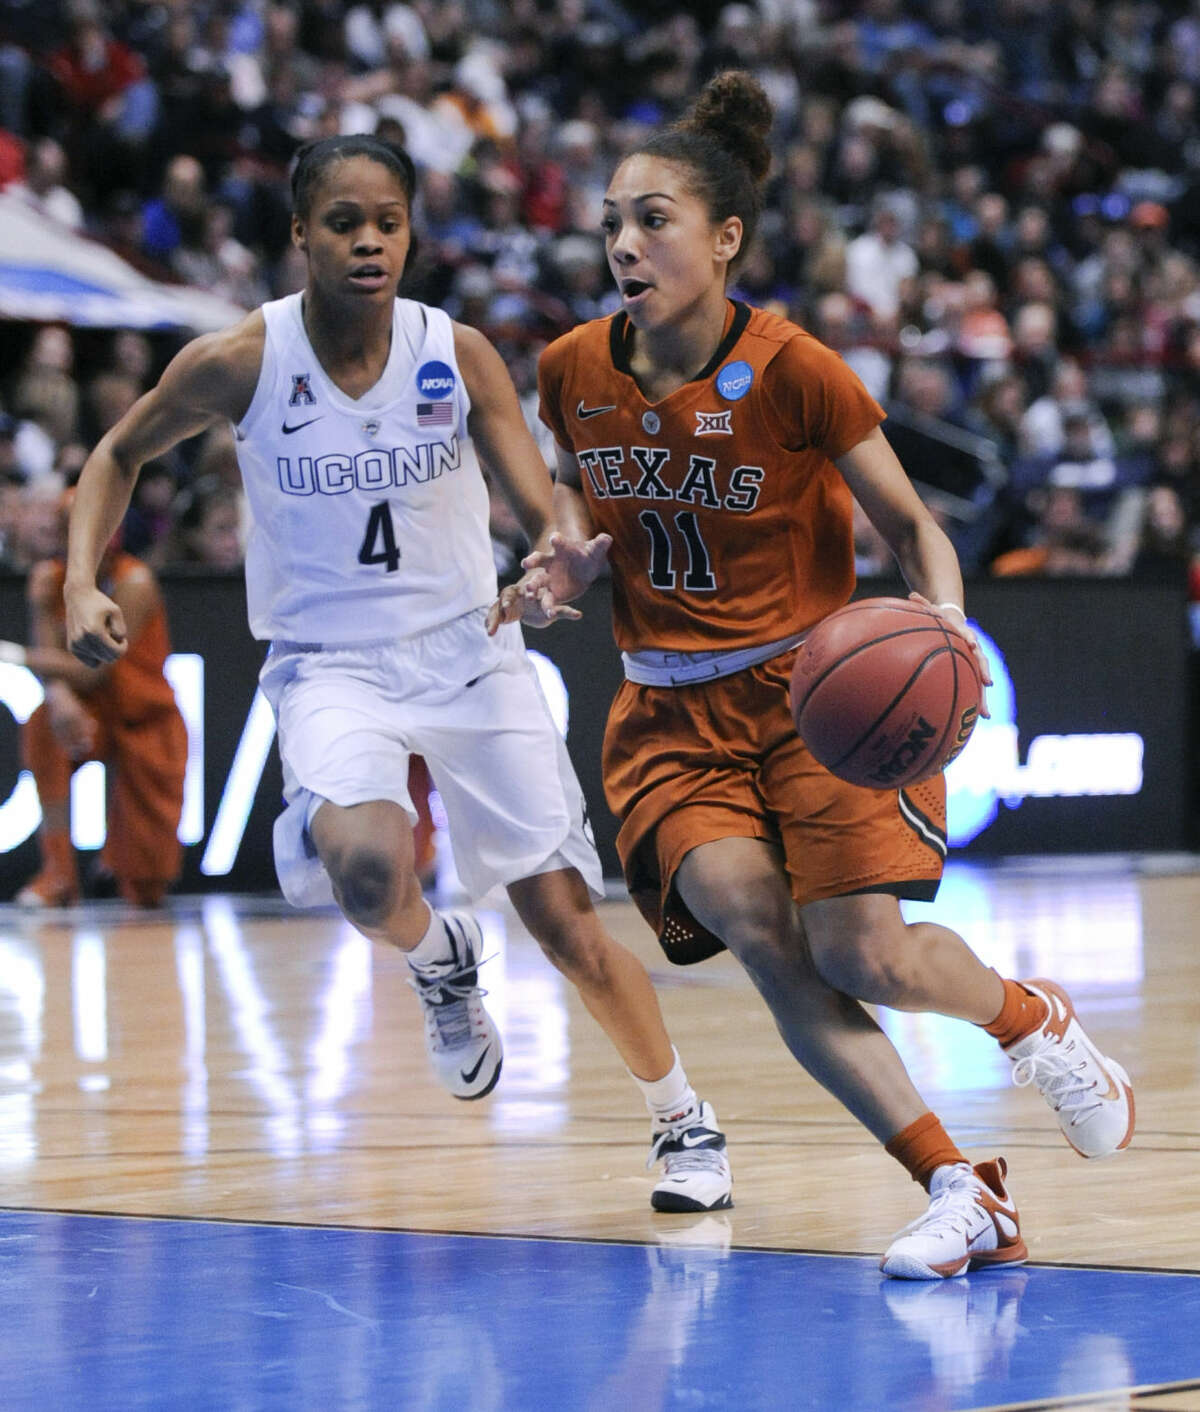 Texas guard Brooke McCarty (11) drives past Connecticut guard Moriah Jefferson (4) during the first half of a women's college basketball regional semifinal game in the NCAA Tournament on Saturday, March 28, 2015, in Albany, N.Y. (AP Photo/Tim Roske)